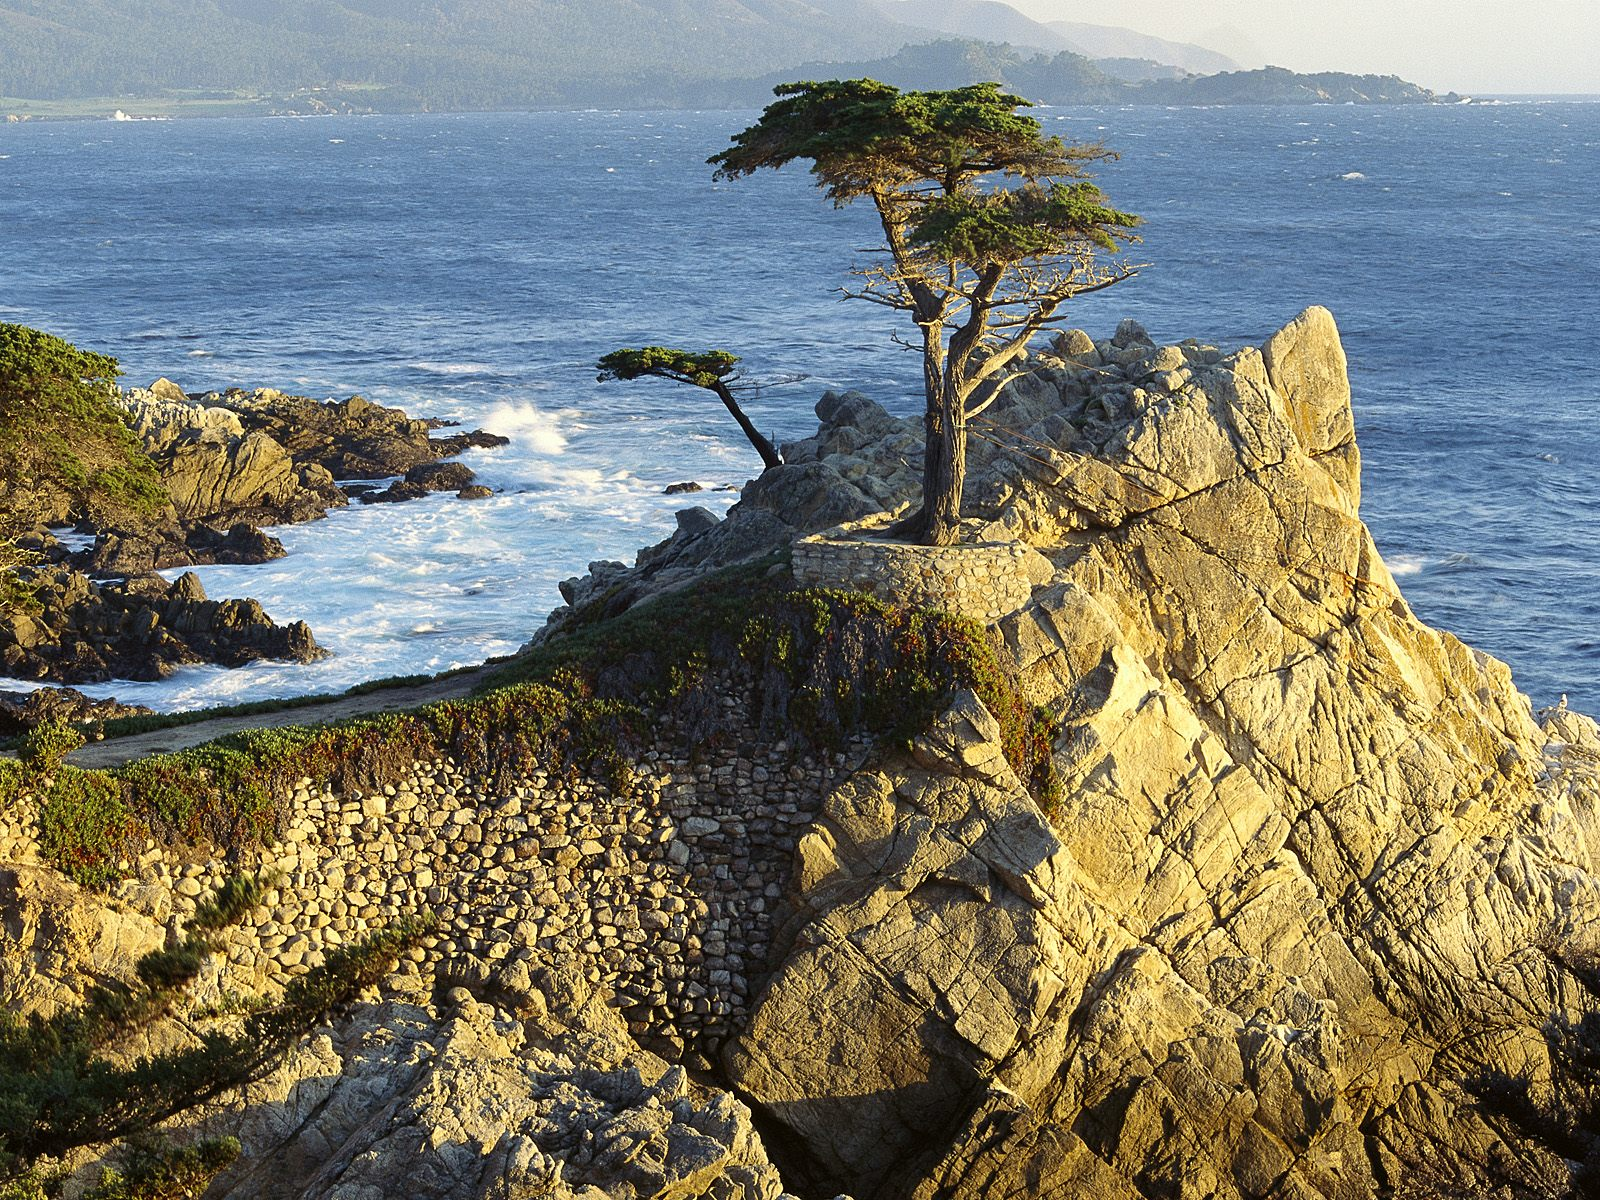 http://2.bp.blogspot.com/-IoQPxG6n7w0/TisZDm3q4HI/AAAAAAAAA2E/KRUJHhL41rc/s1600/World_USA_Lono_Cypress___Pebble_Beach___California___USA_008934_.jpg